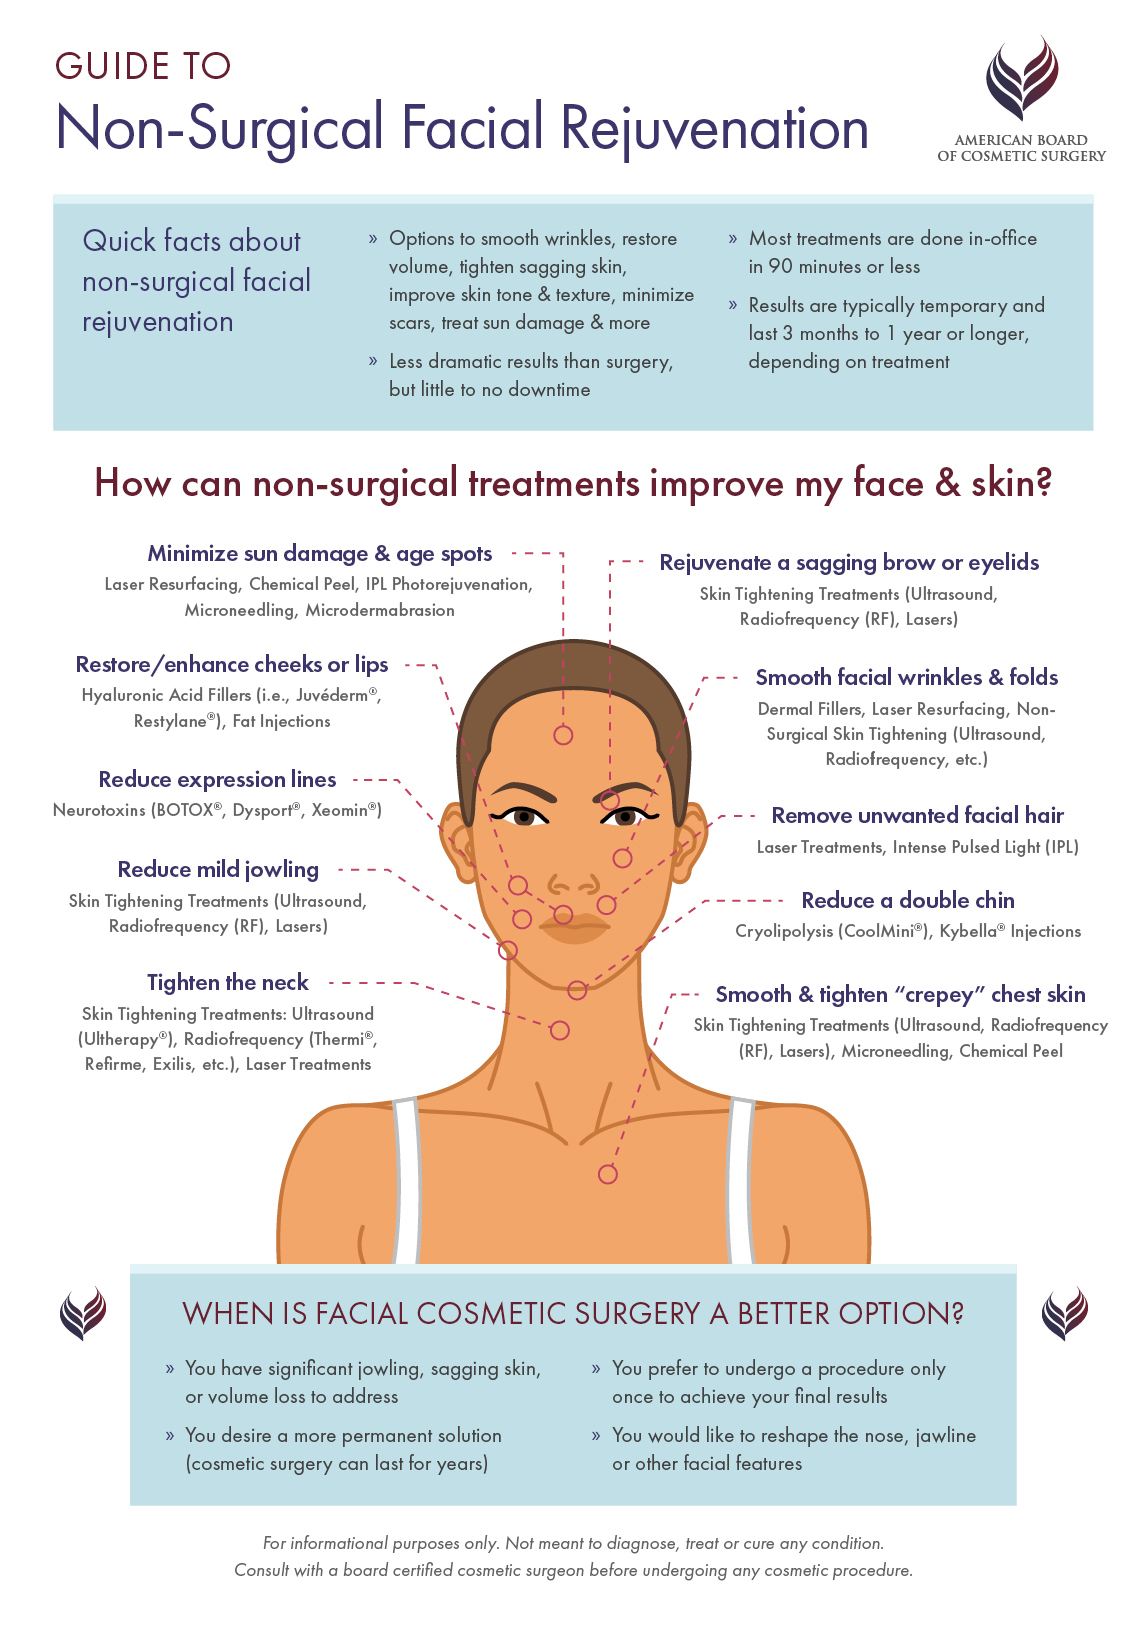 Guide to Non-Surgical Facial Rejuvenation